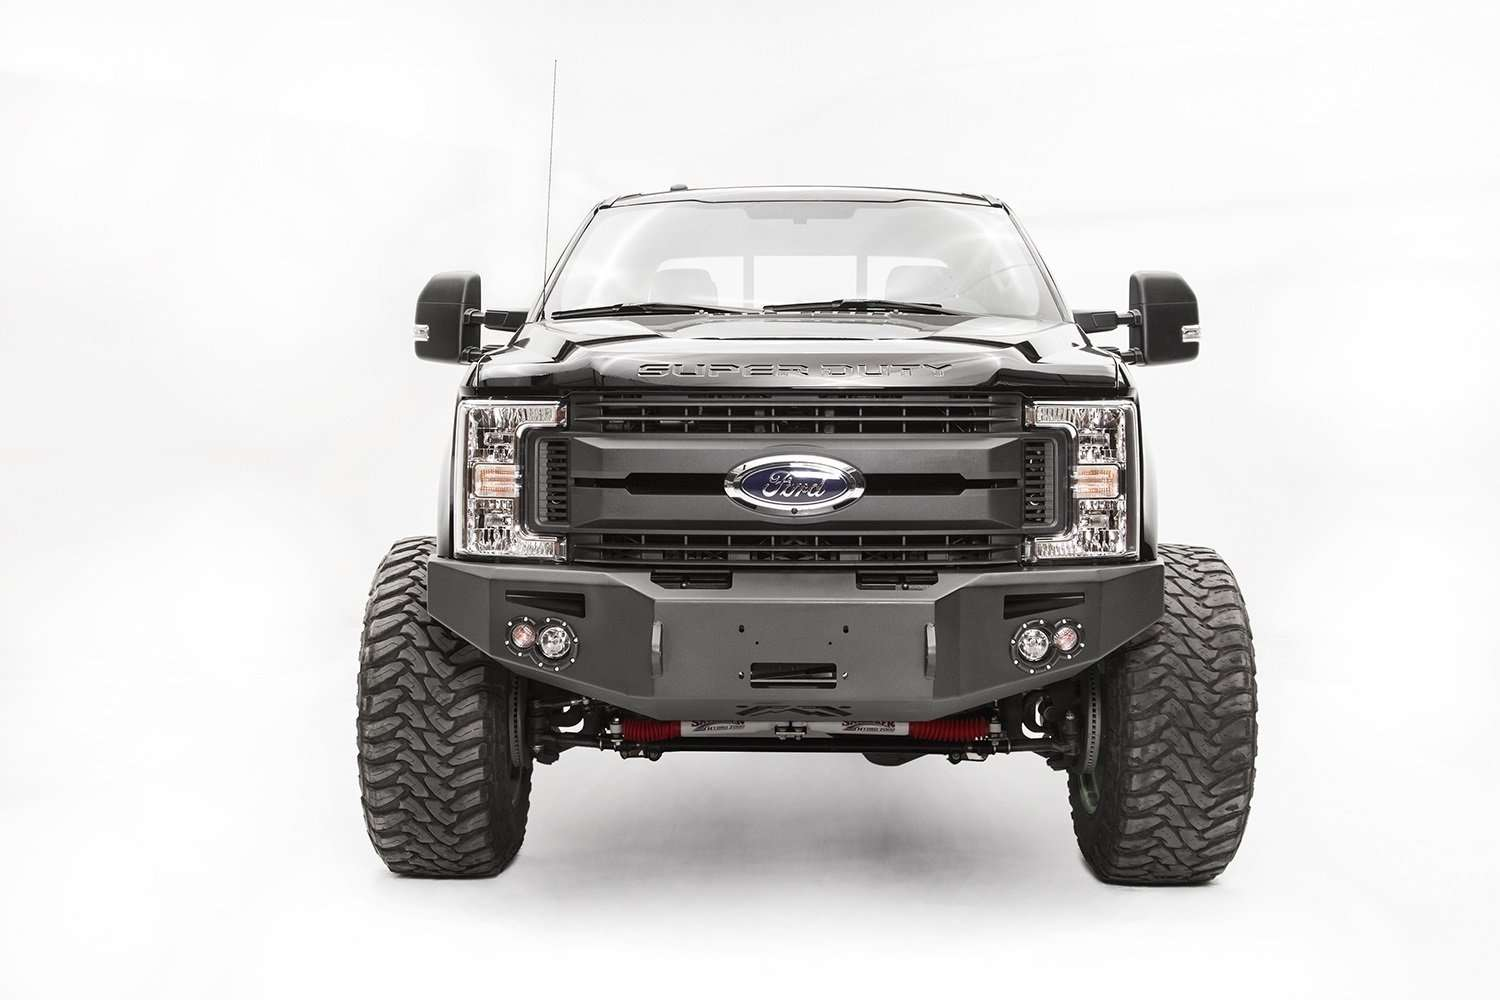 Fab Fours FS17-A4151-1 Ford F250/F350 Superduty 2017-2021 Premium Front Winch Bumper No Guard-BumperStock